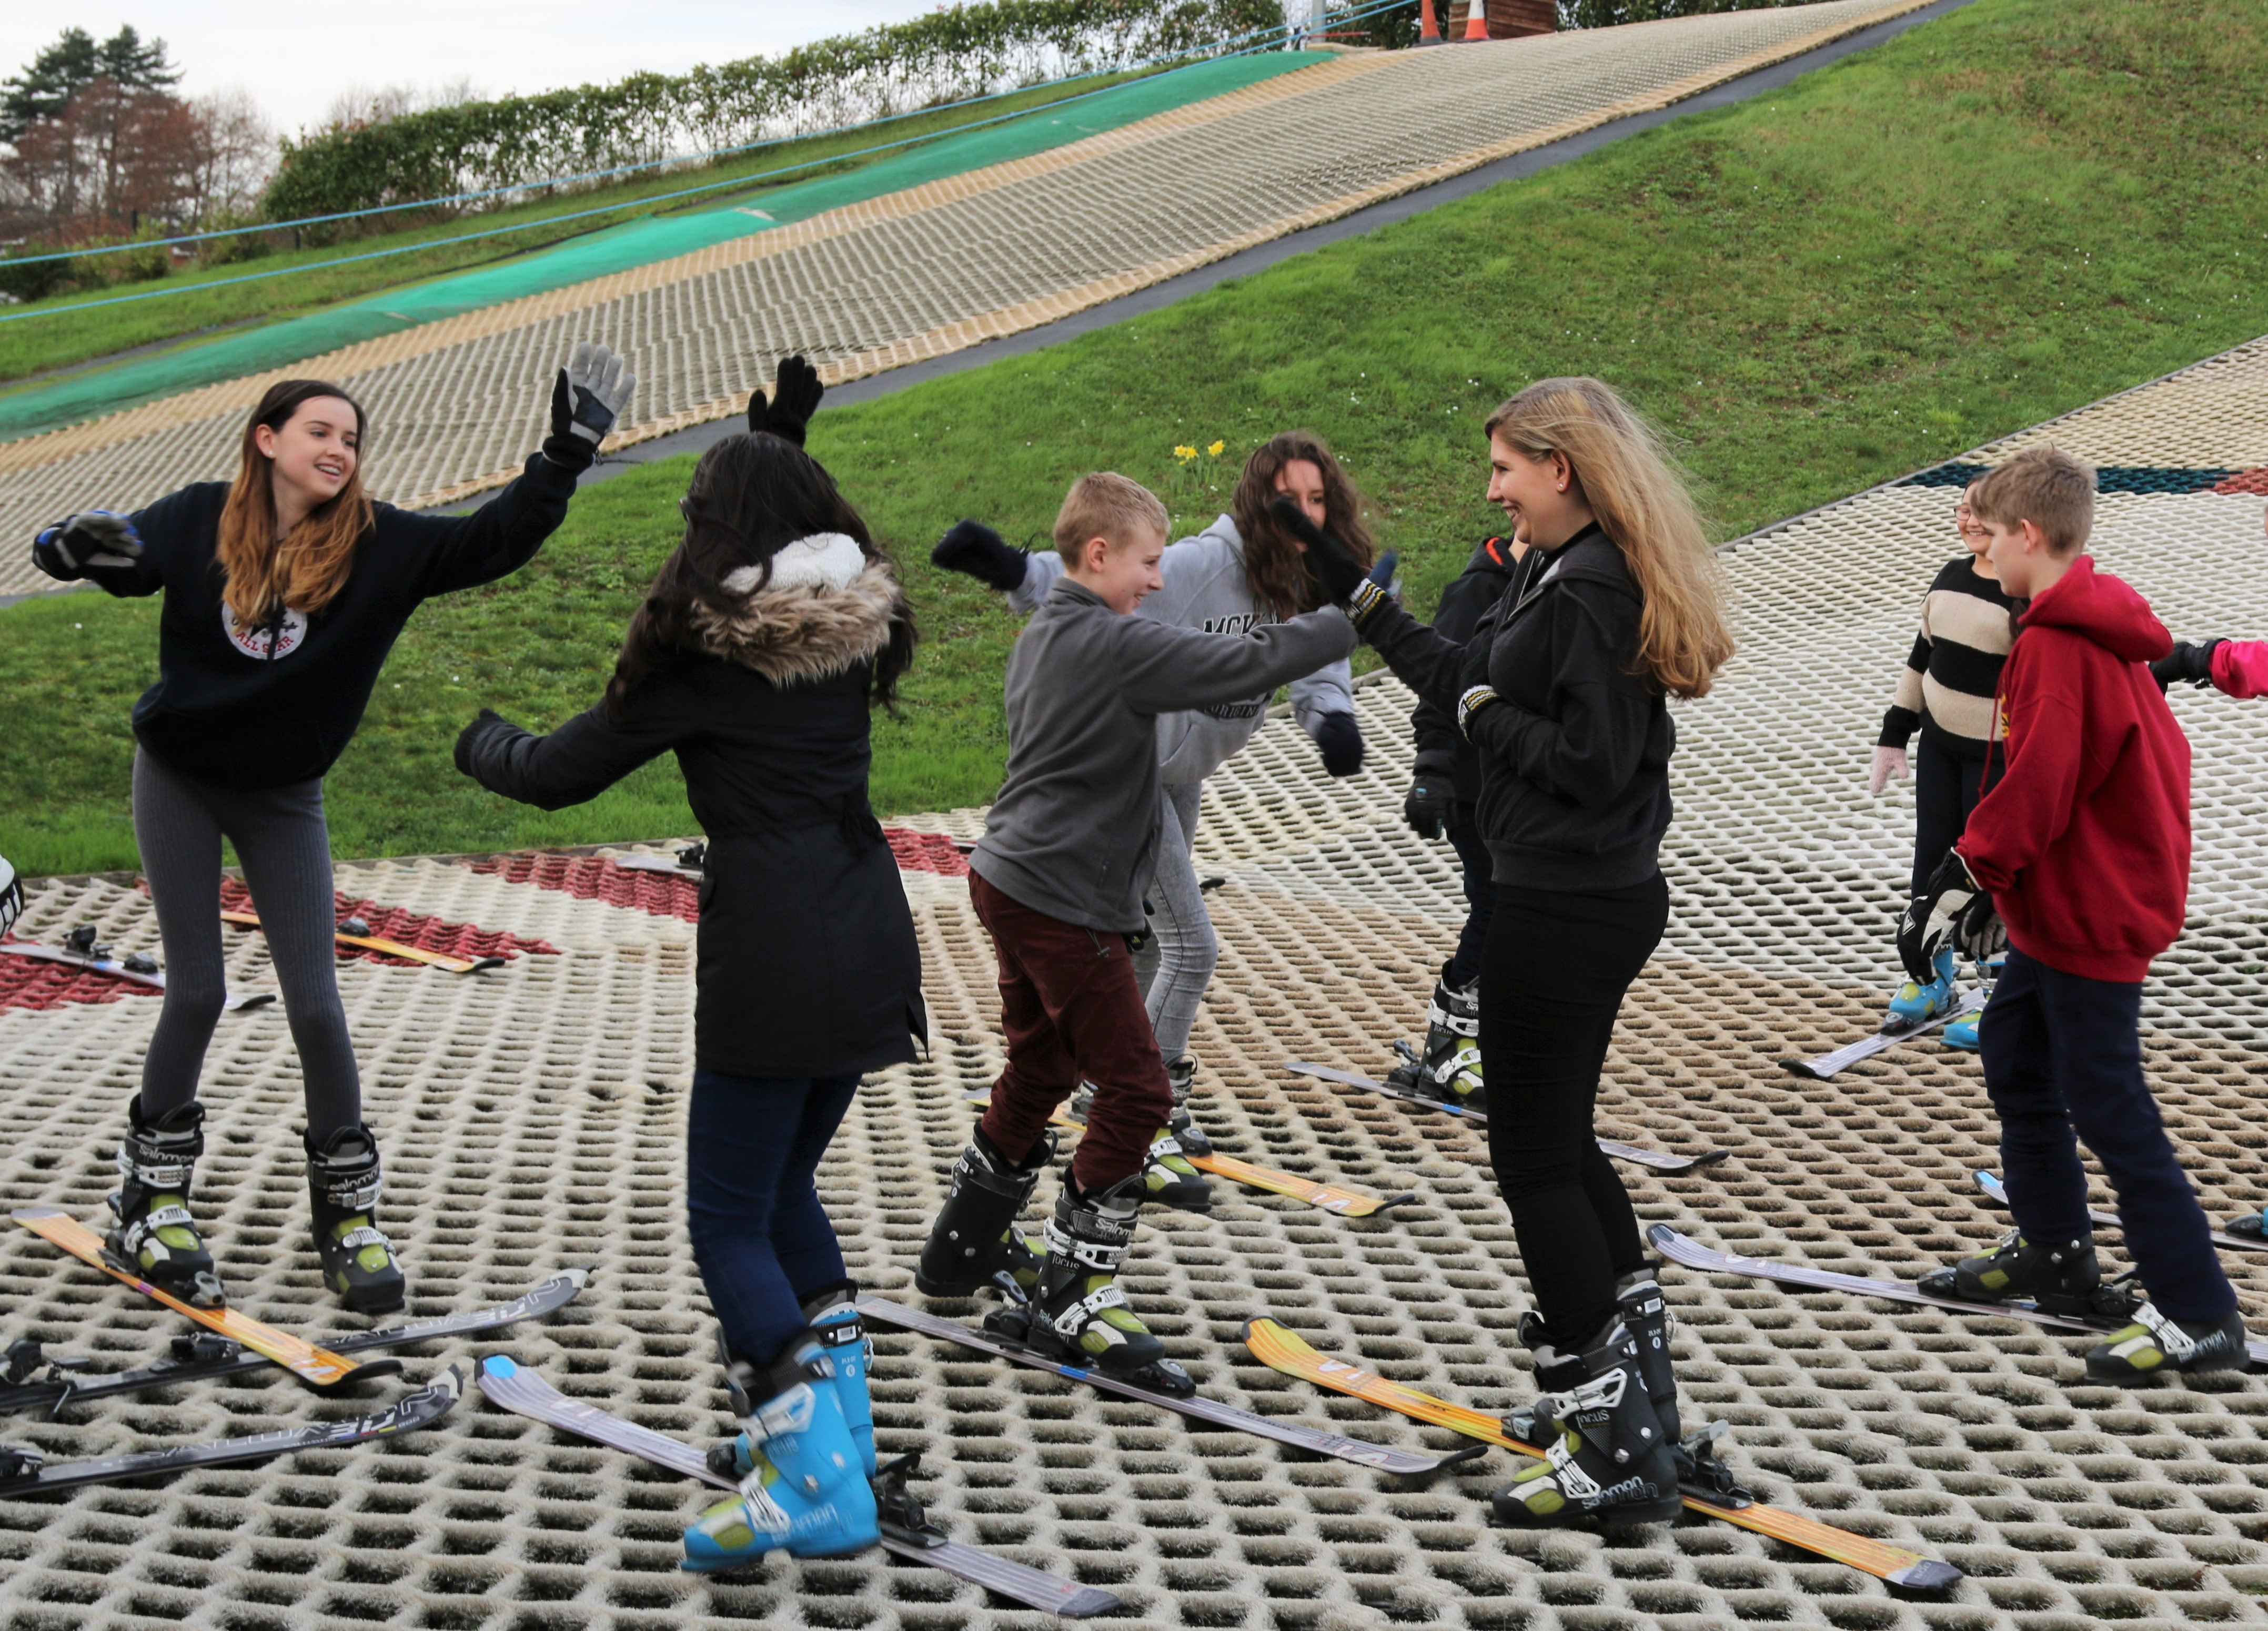 The Guildford Ski Slope Group Sessions